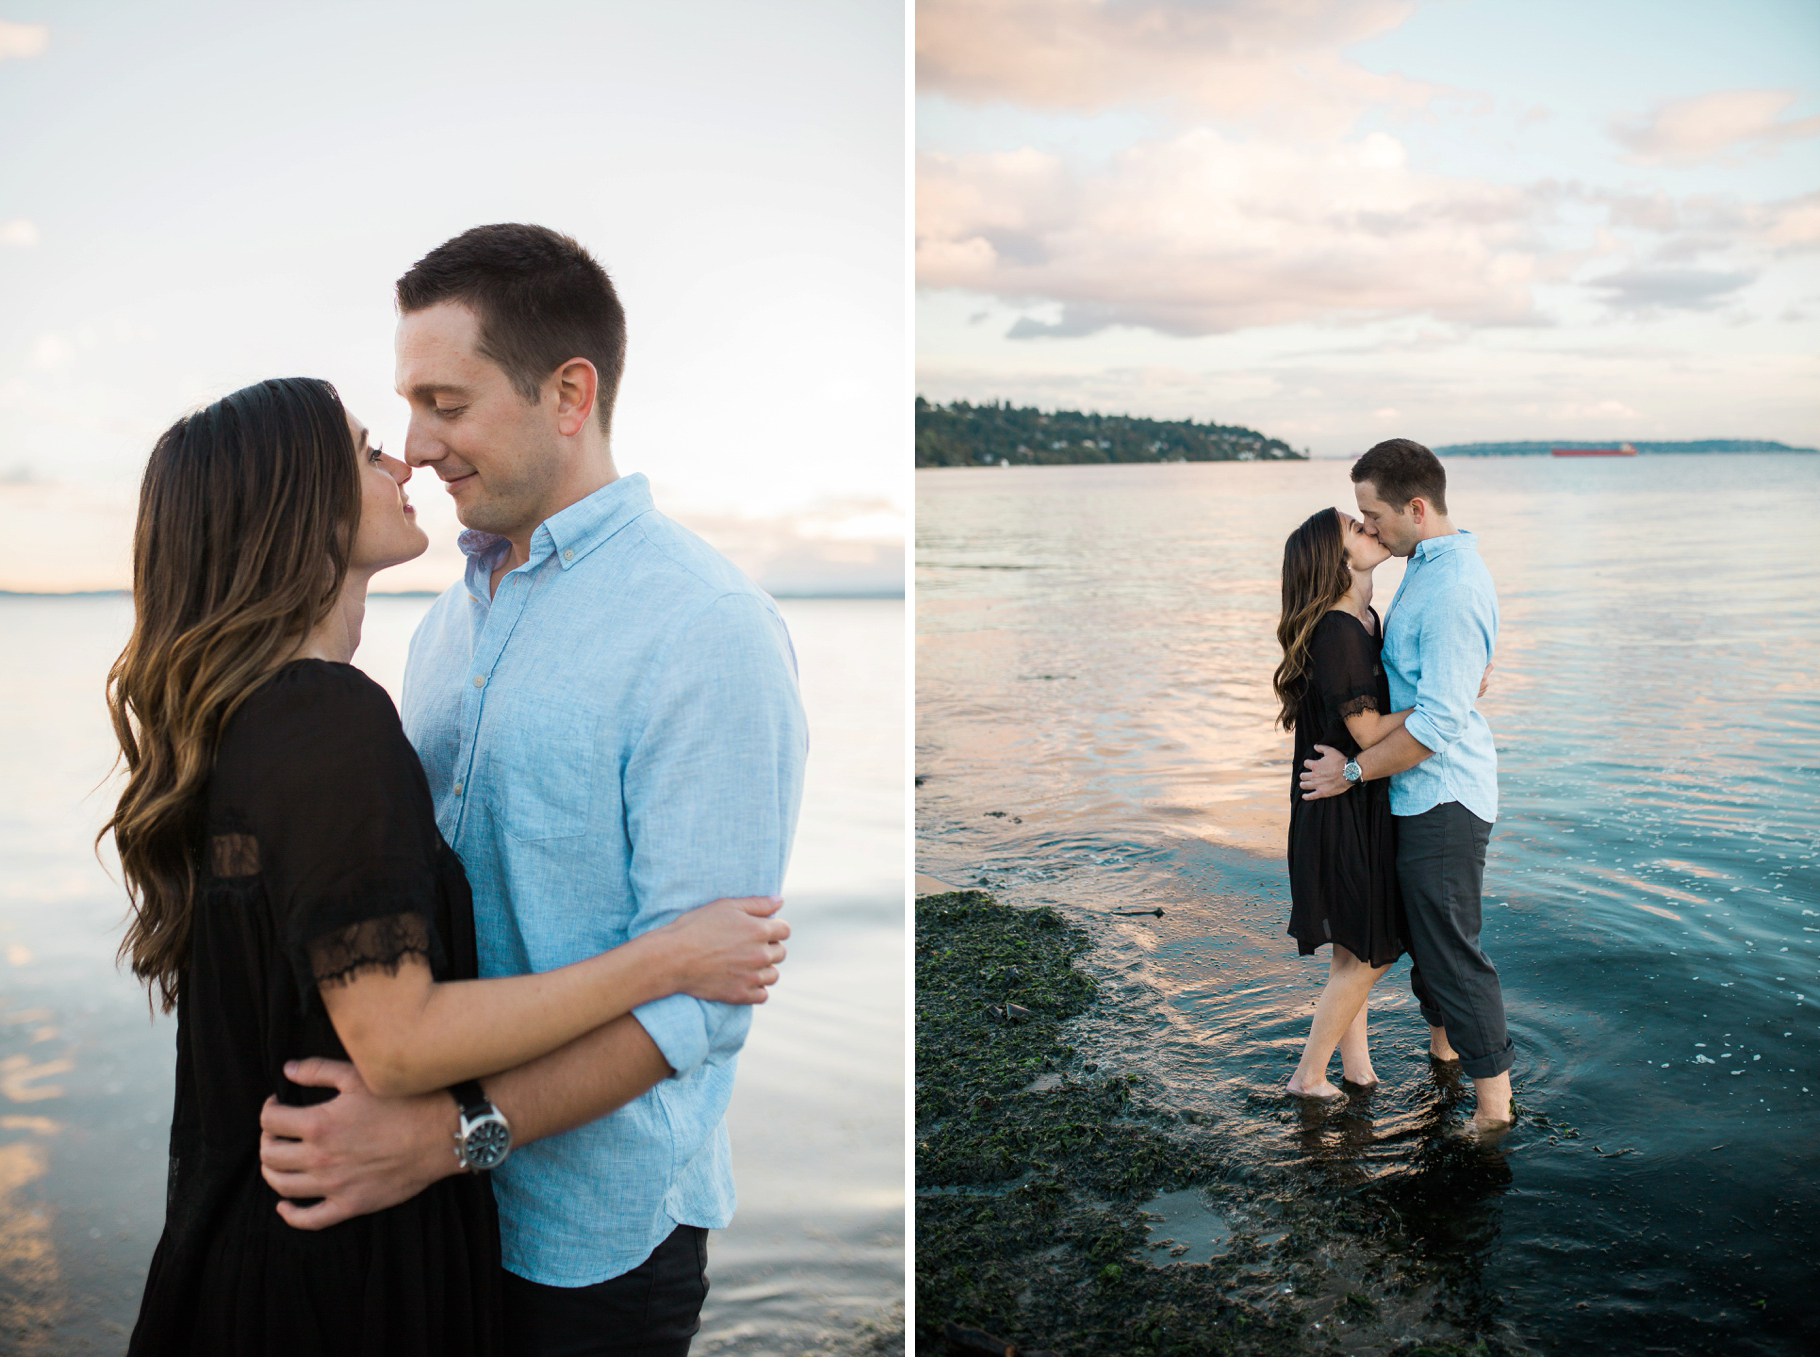 Discovery-Park-Seattle-Engagment-Photographer-Wedding-Photography-by-Betty-Elaine_0014